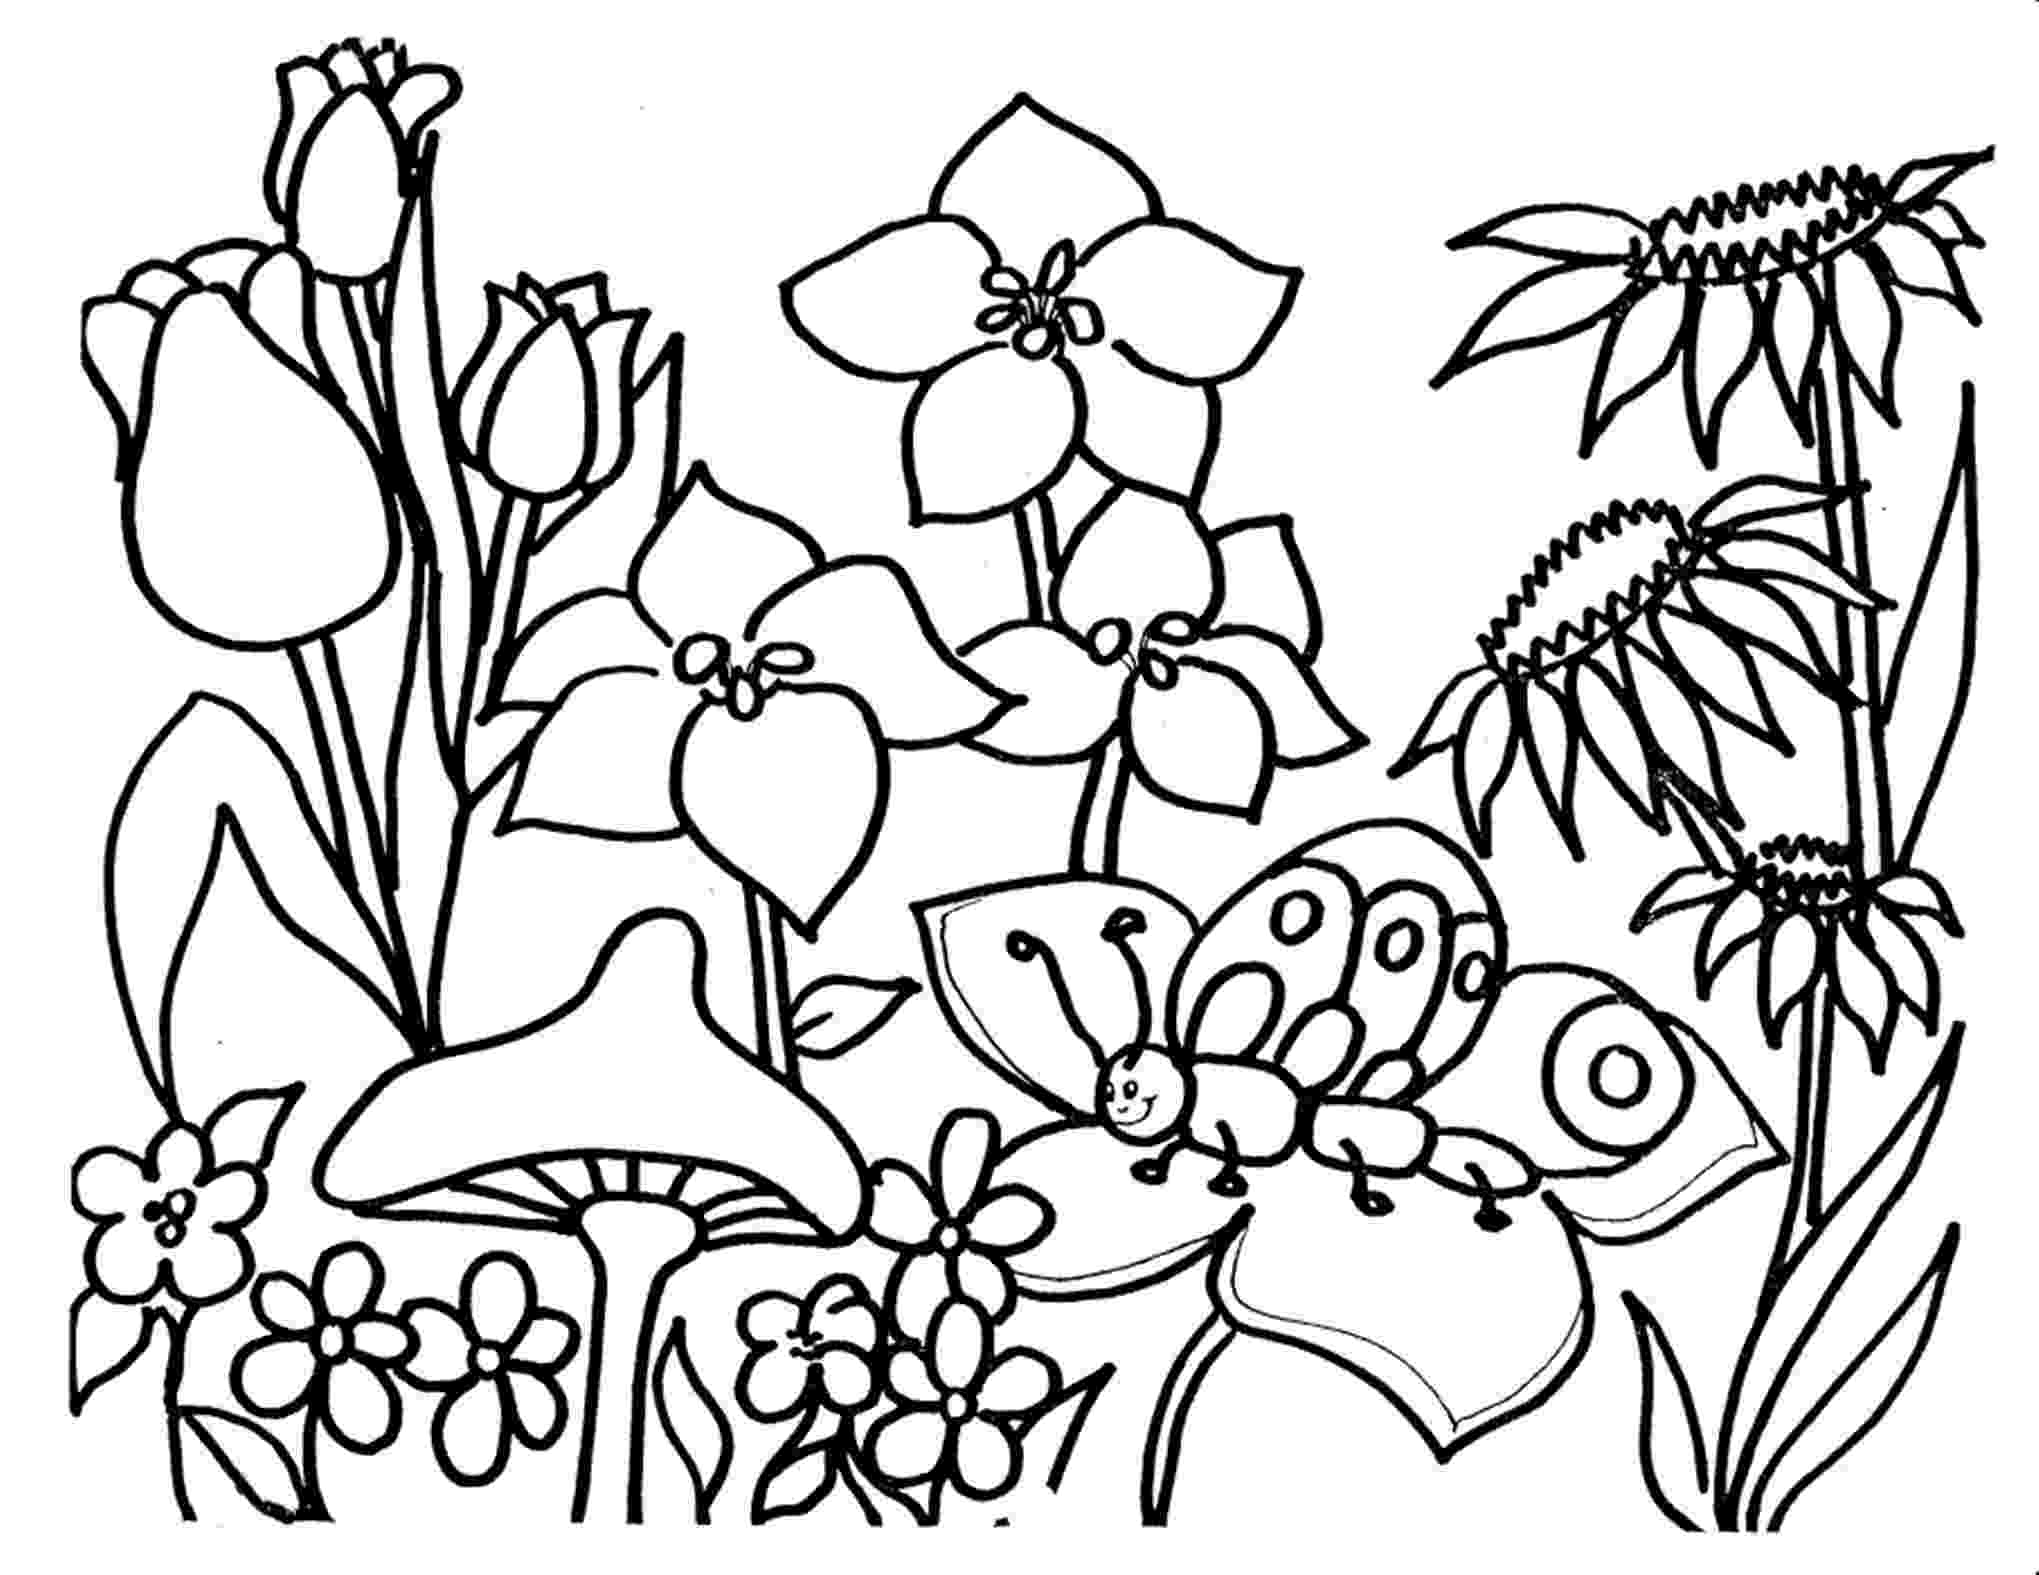 flowers coloring pages printable free printable flower coloring pages for kids best printable coloring pages flowers